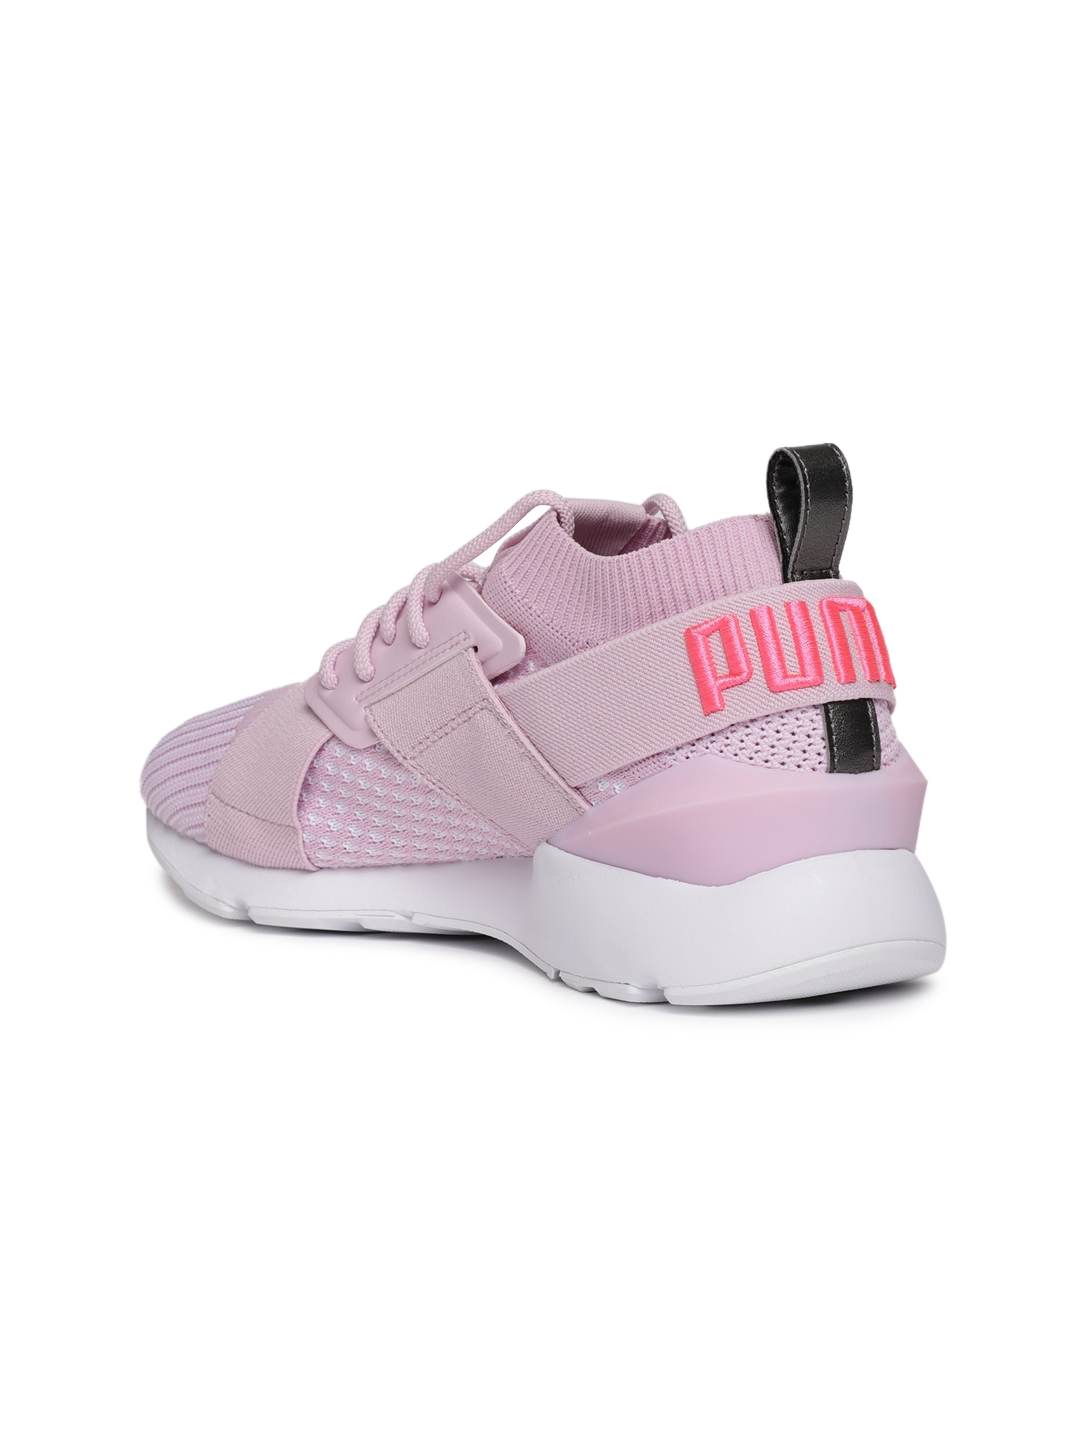 a79c27529af775 Buy Puma Women Pink Muse EvoKnit Sneakers - Casual Shoes for Women ...